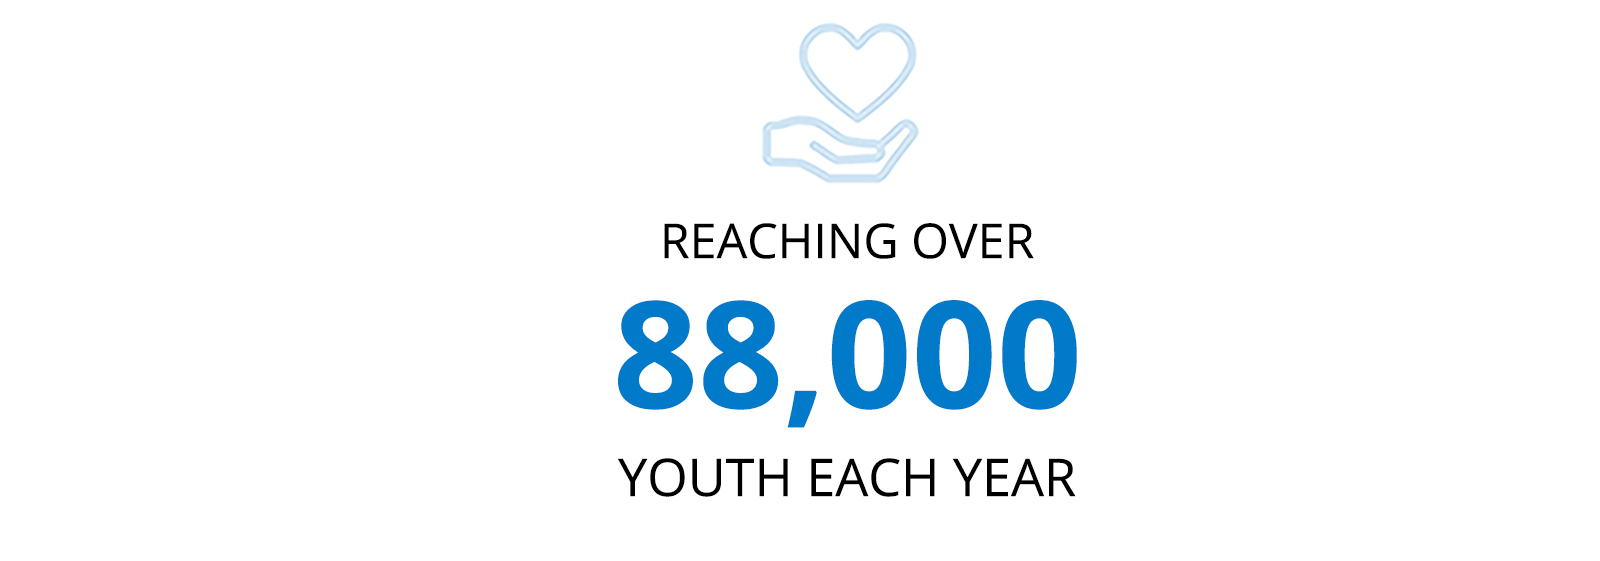 Over 88,000 youth reached this year